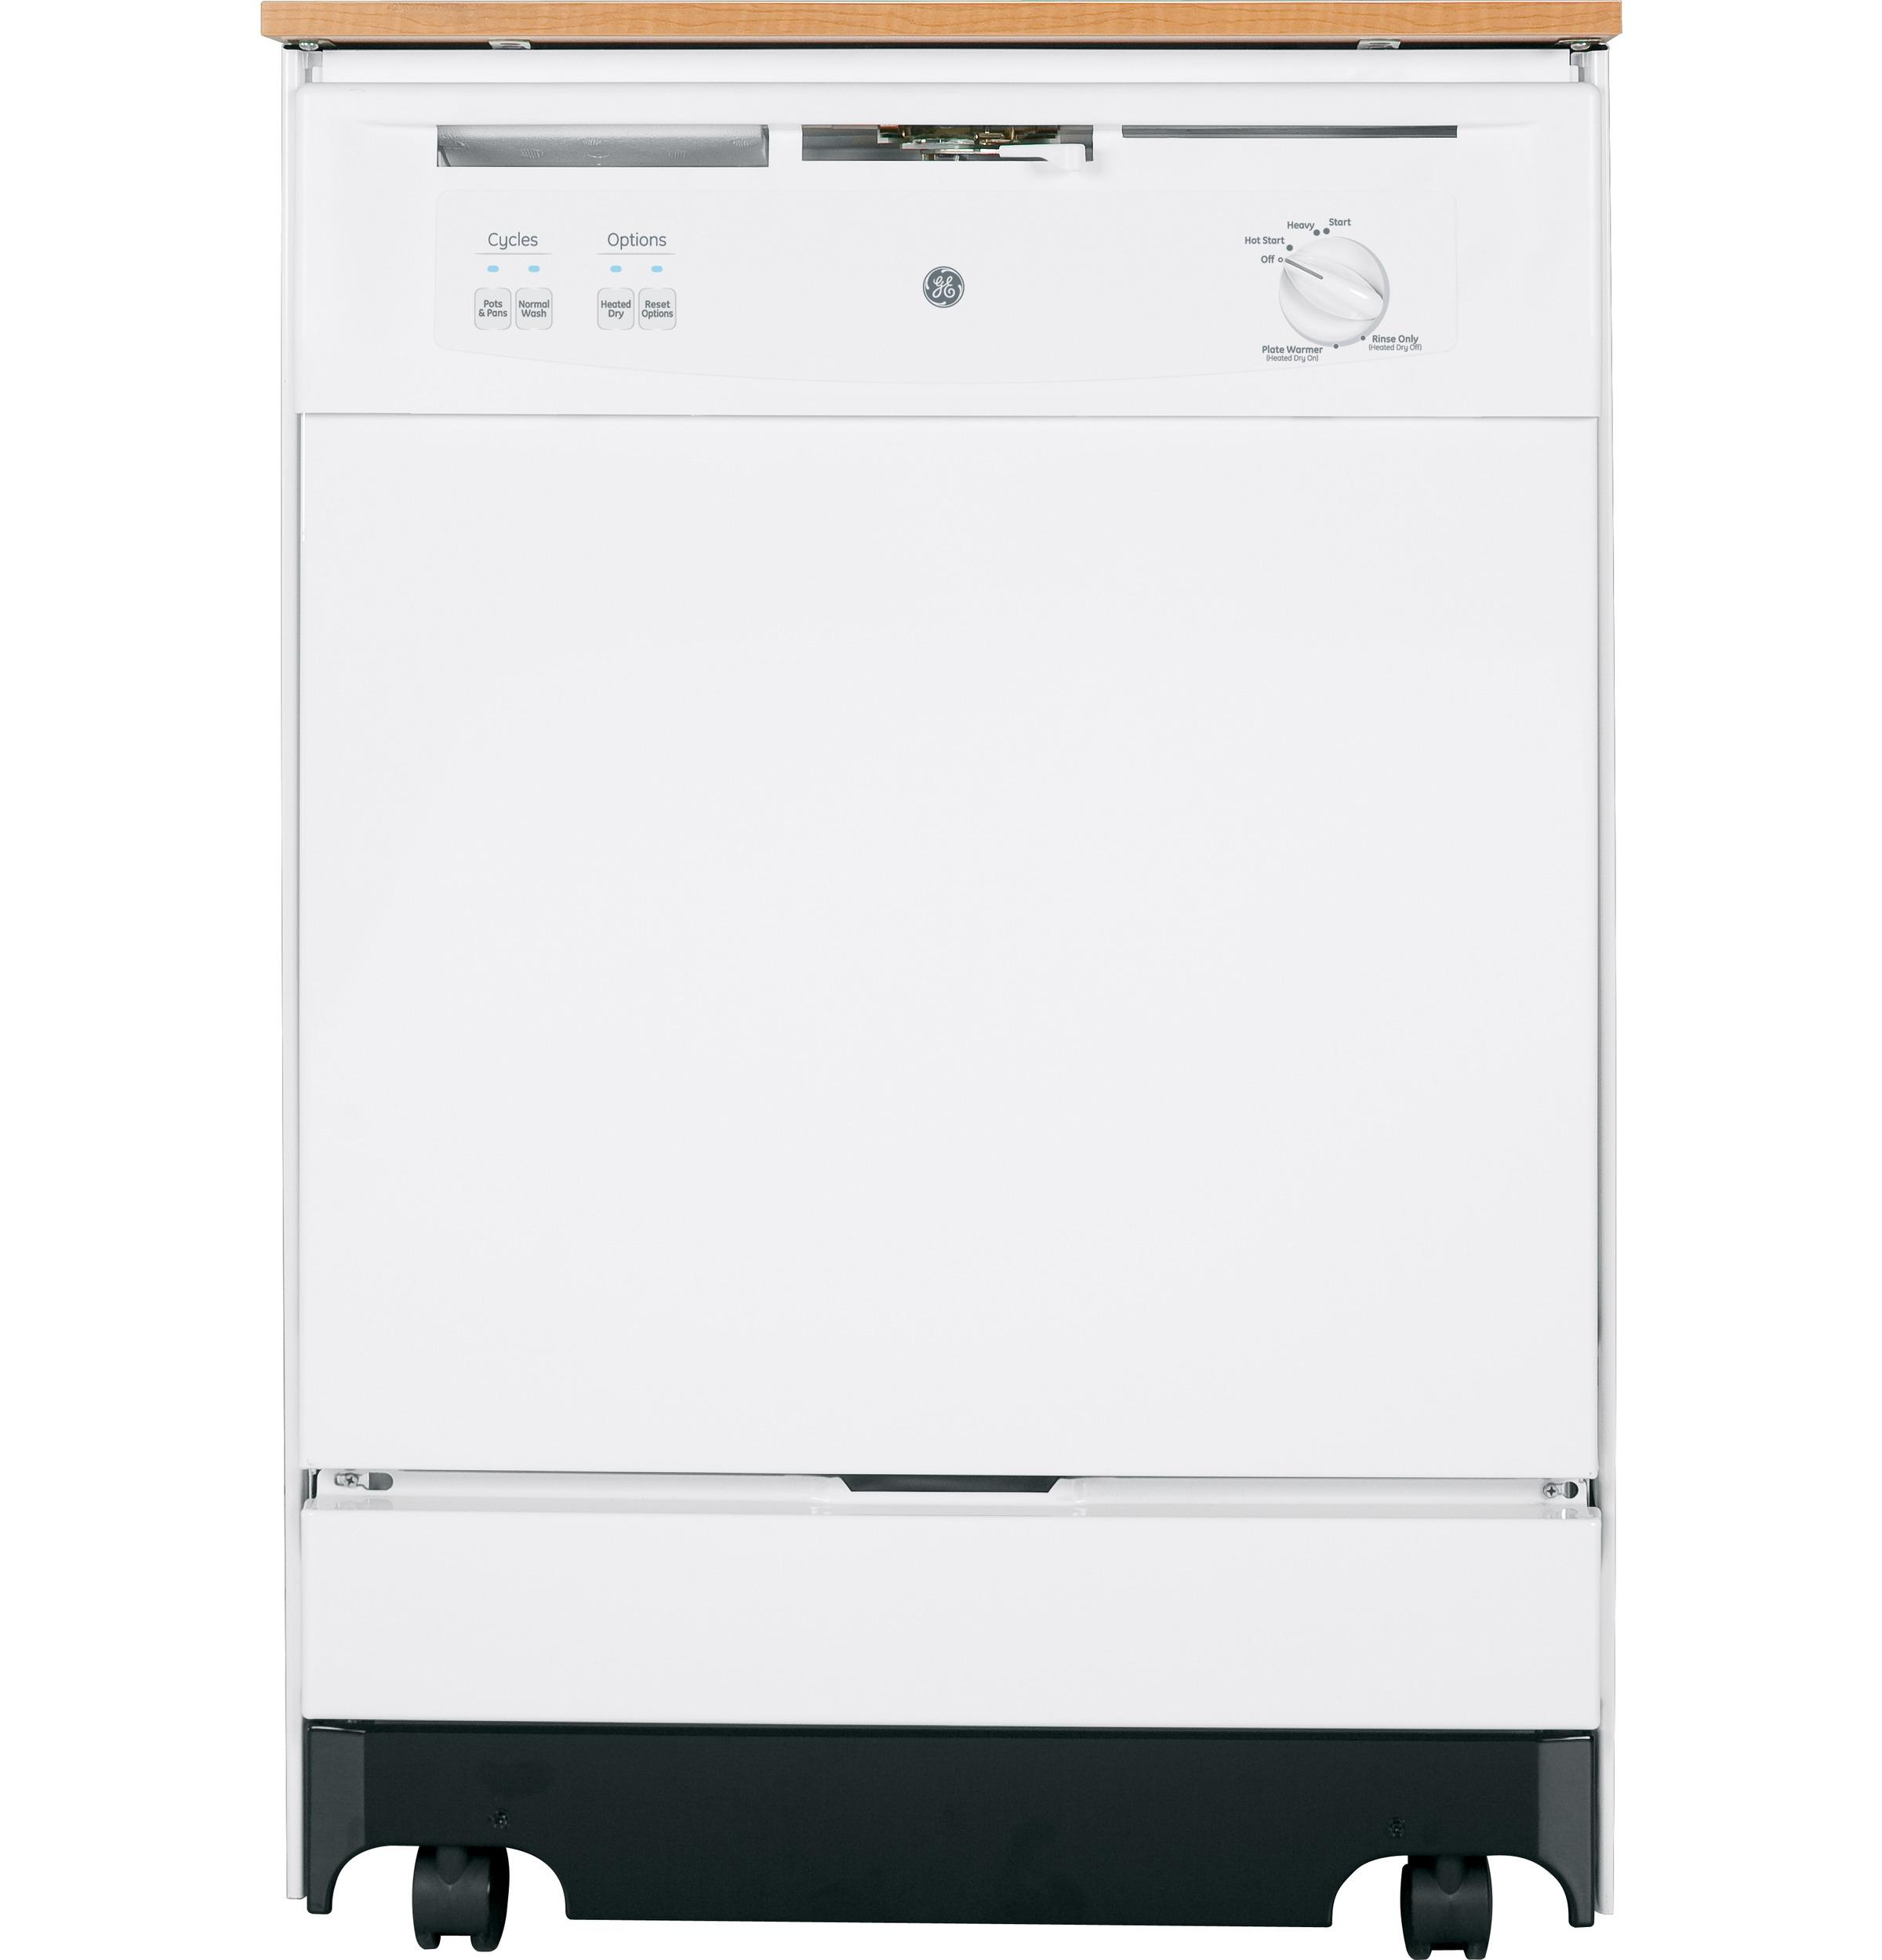 GE(R) Convertible/Portable Dishwasher